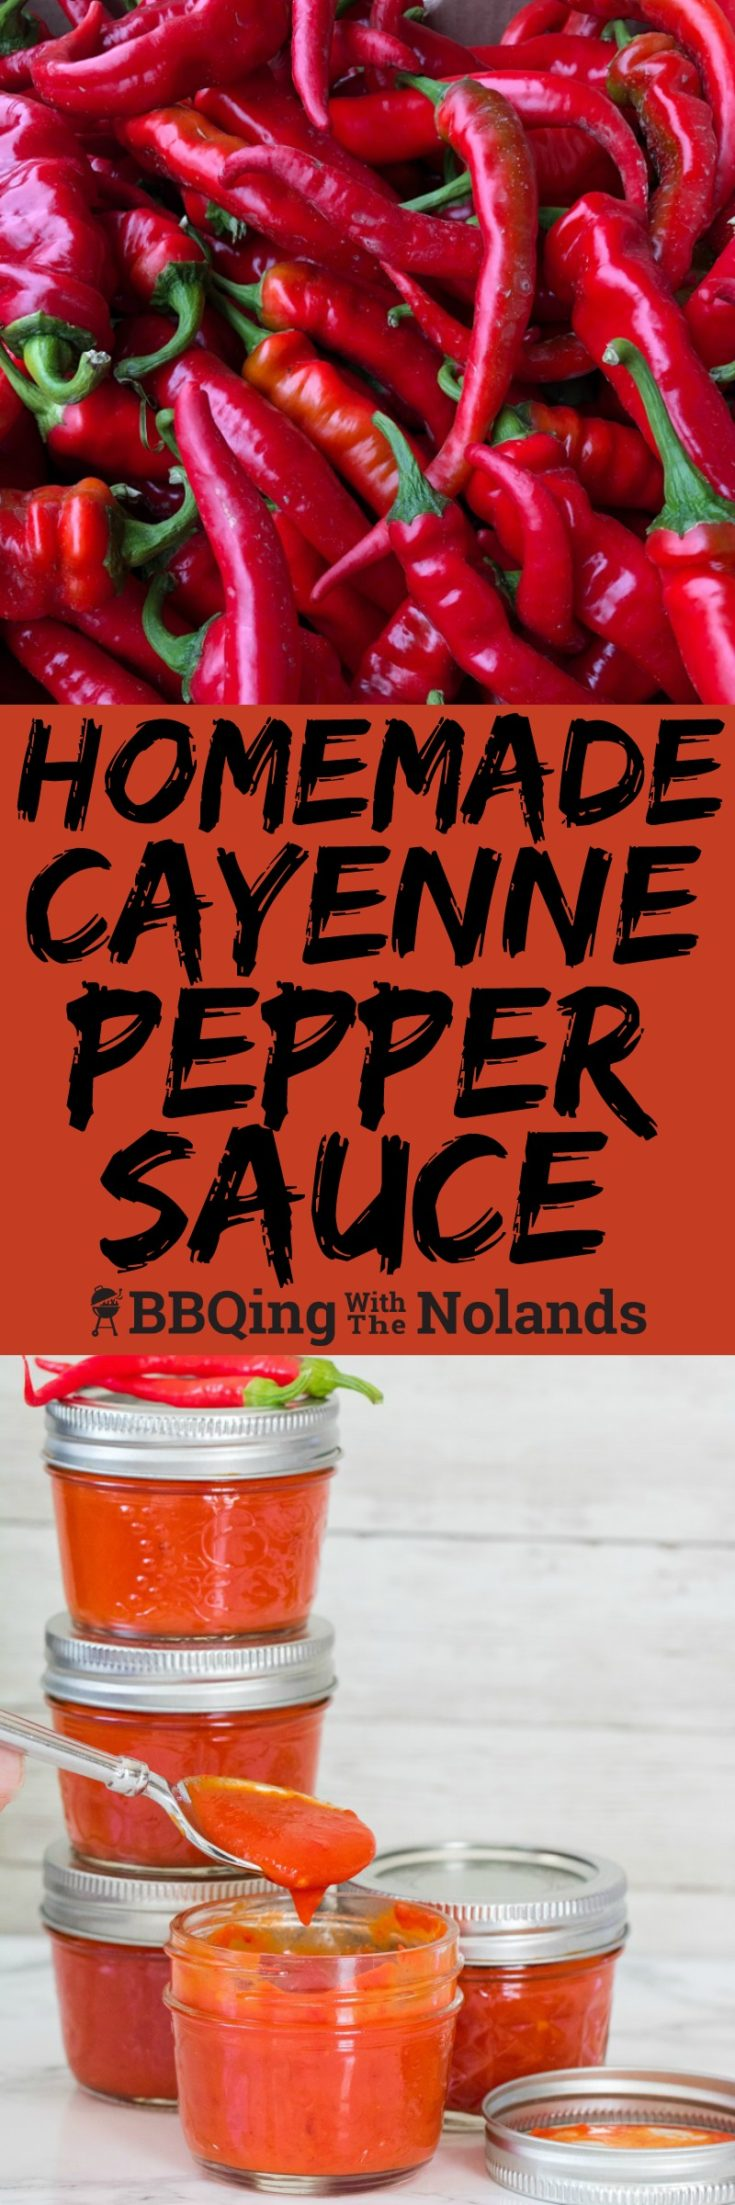 Homemade cayenne pepper sauce is a great way to preserve the spicy cayenne peppers you get all summer, and after all, what could be better than making your own hot sauce!